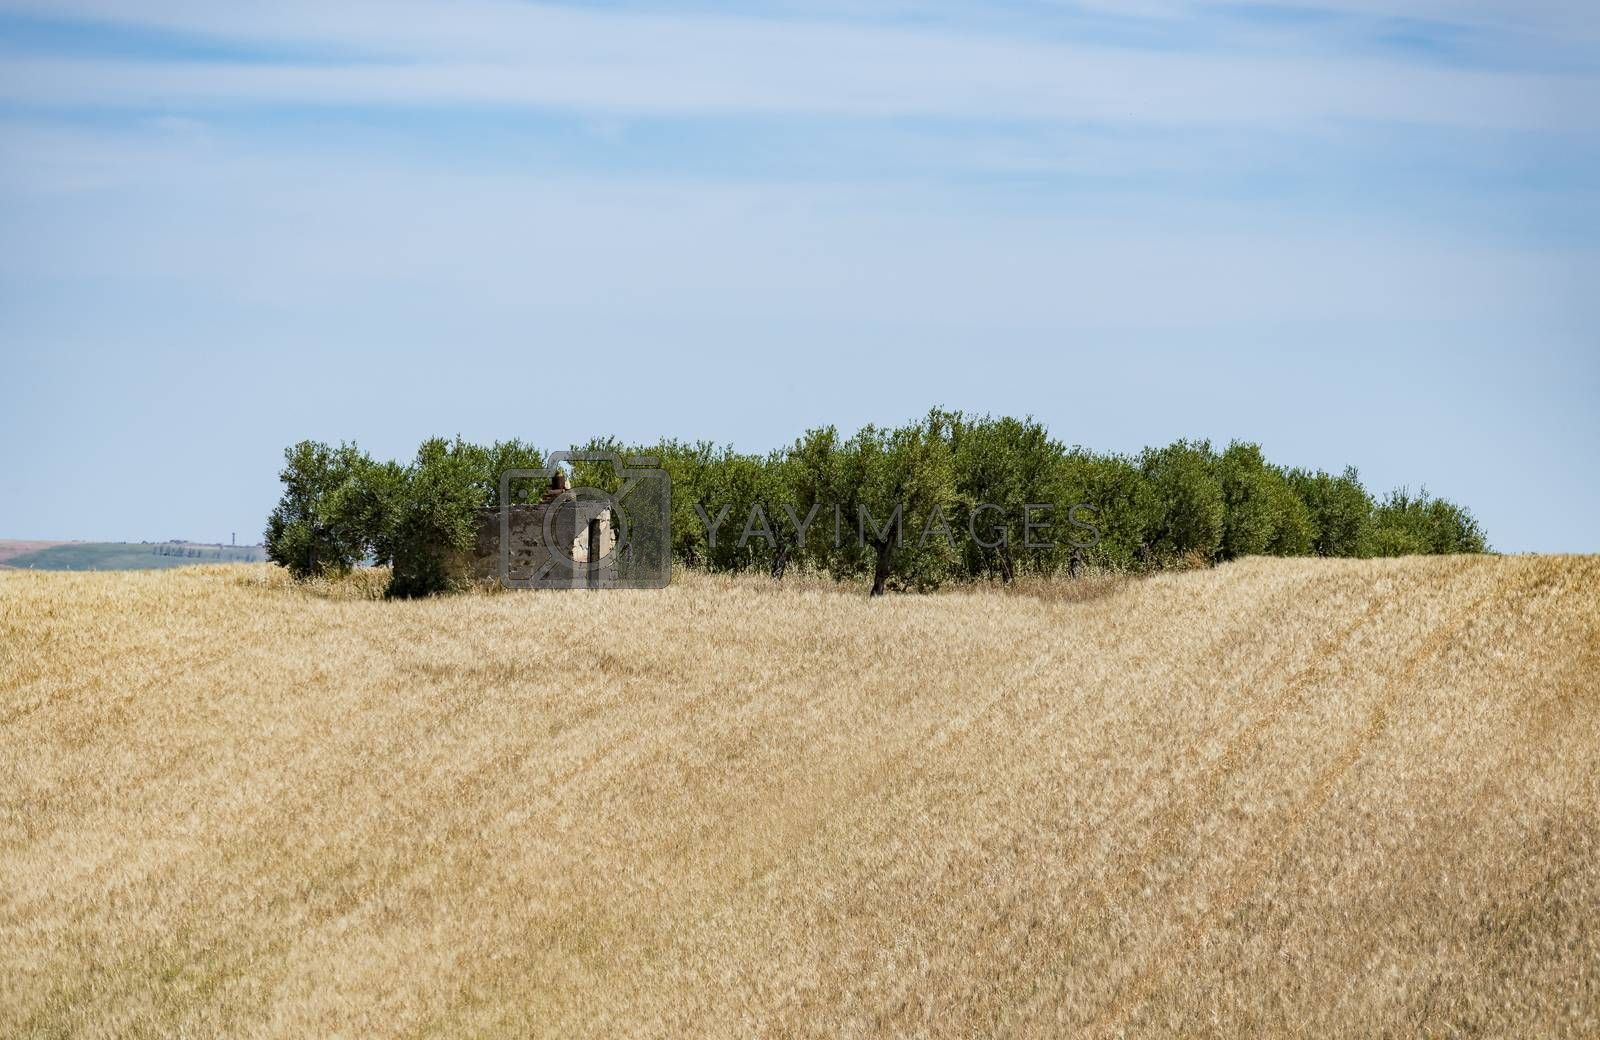 Hilly landscape with wheat field and trees in a typical landscape in Basilicata, Italy